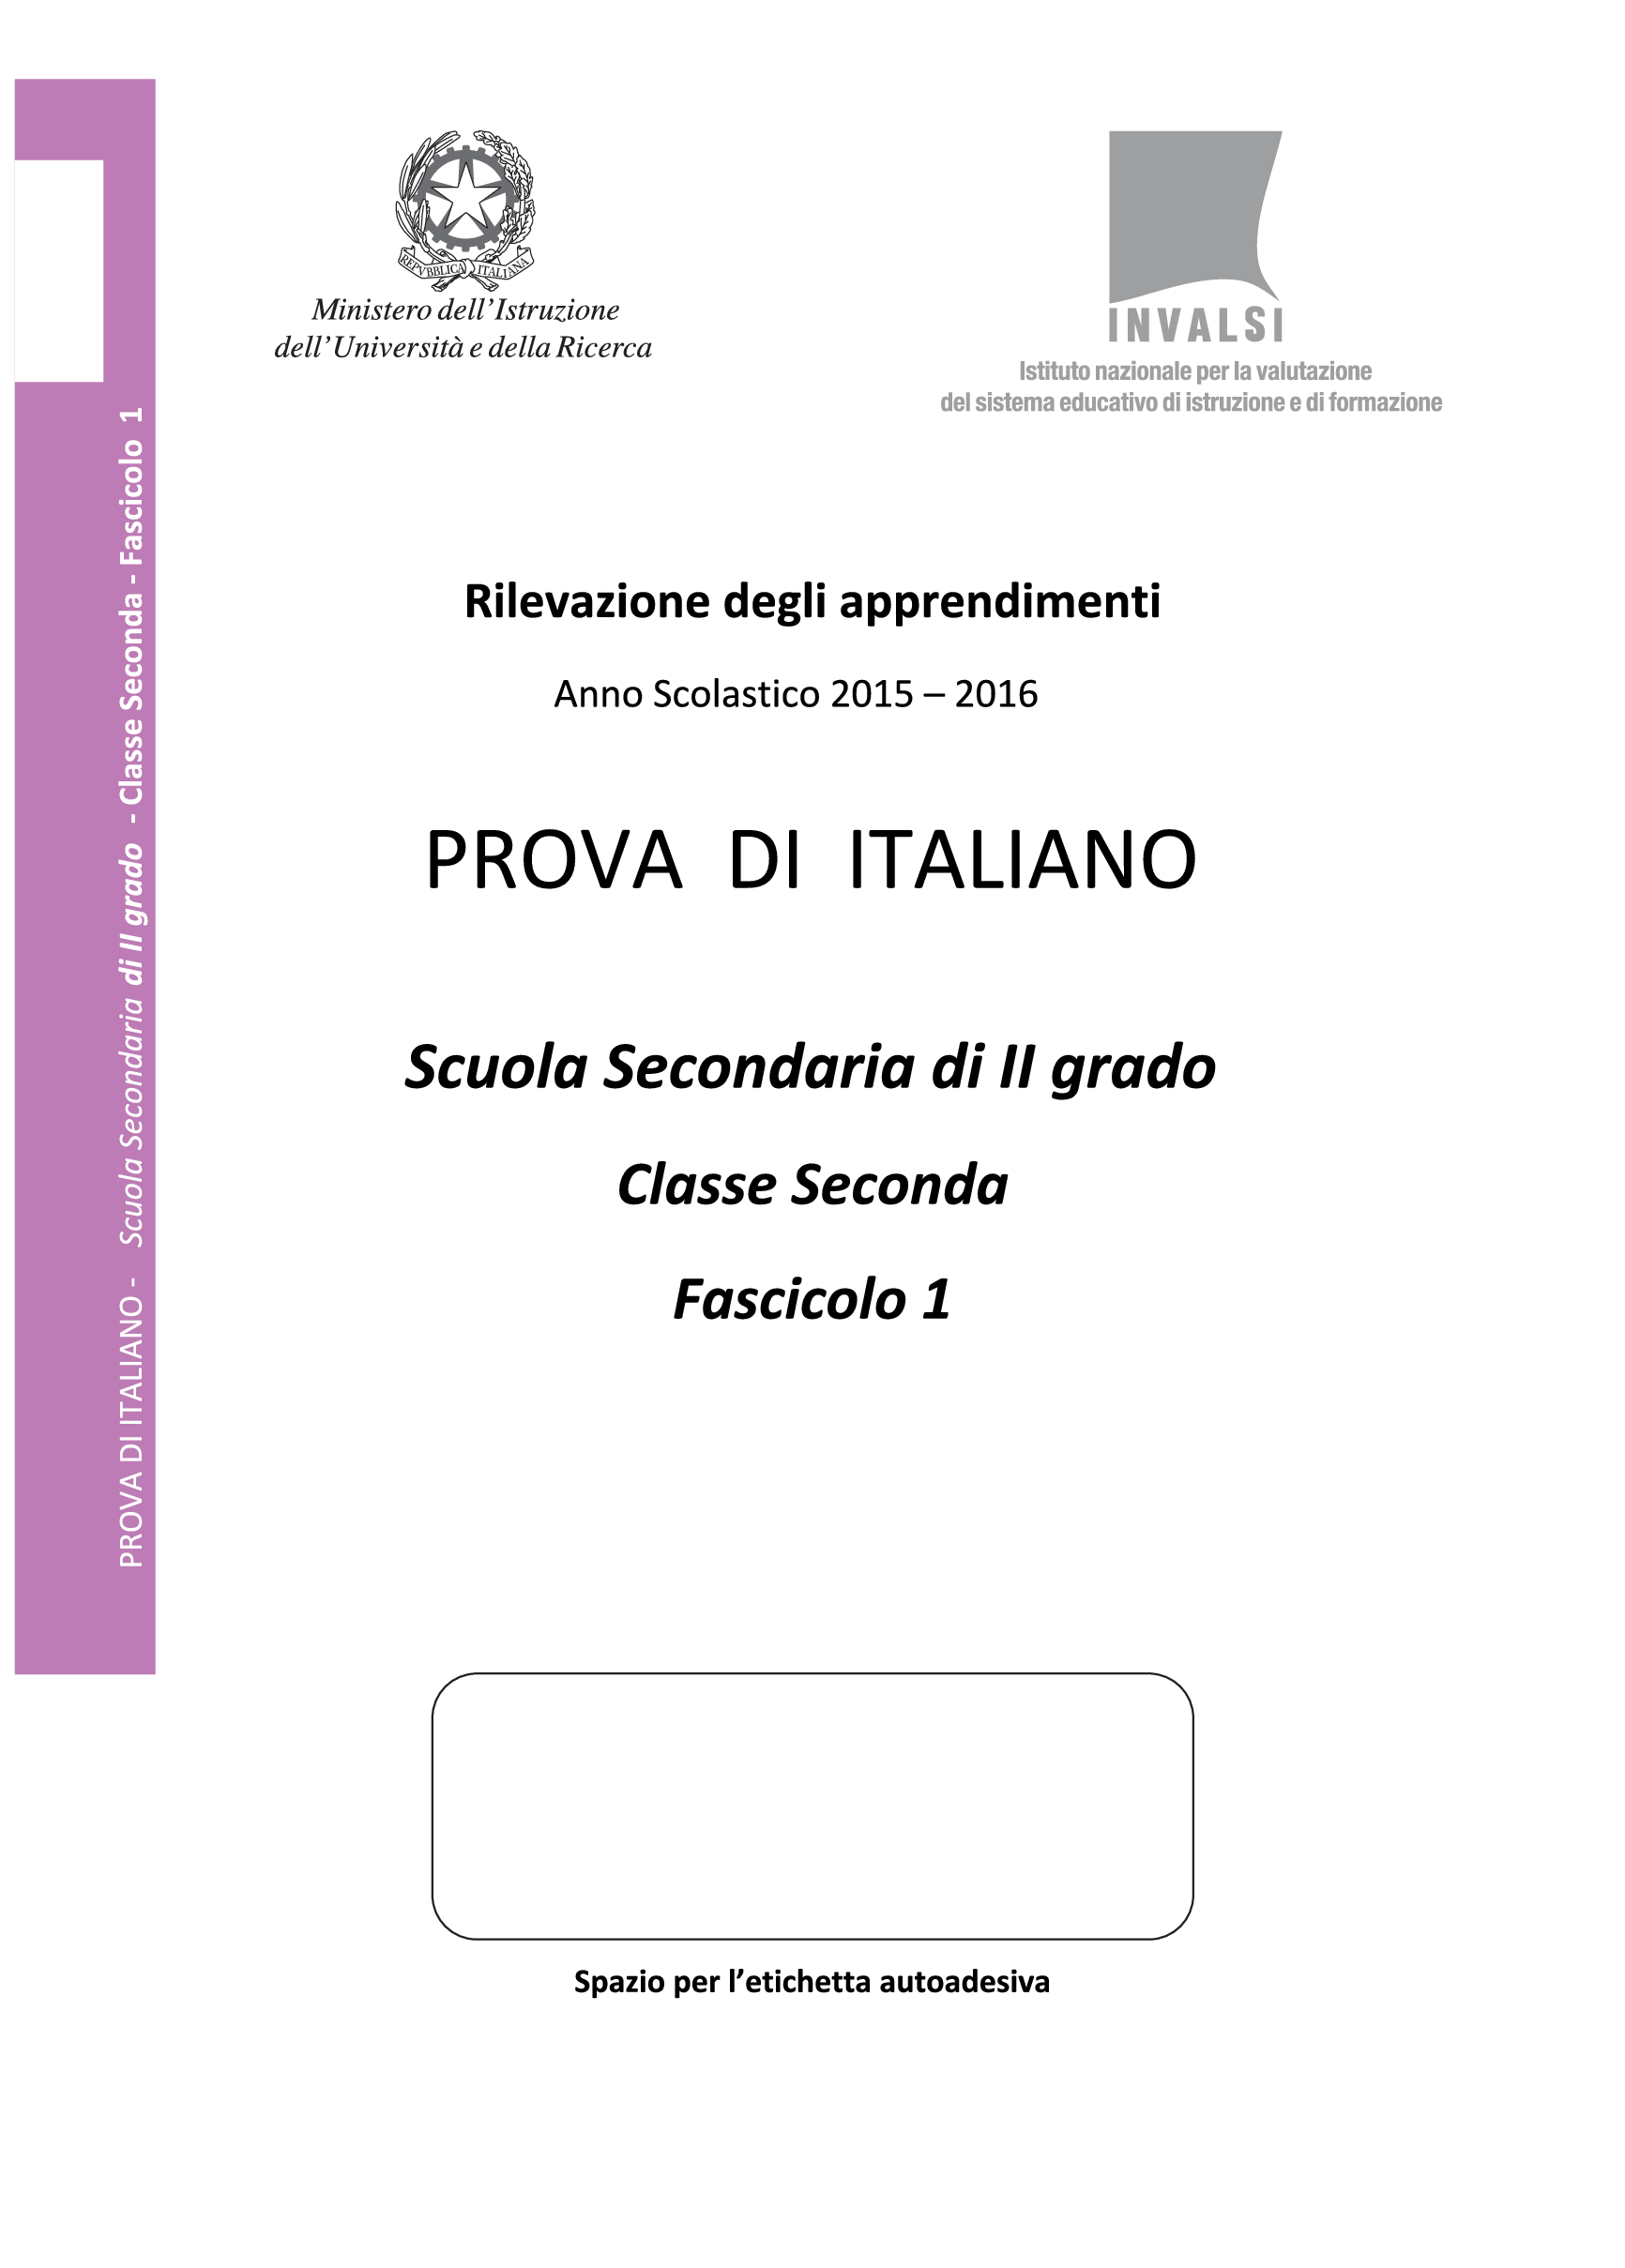 Prova Invalsi Italiano 2015-2016 - seconda classe Superiori pg. 1